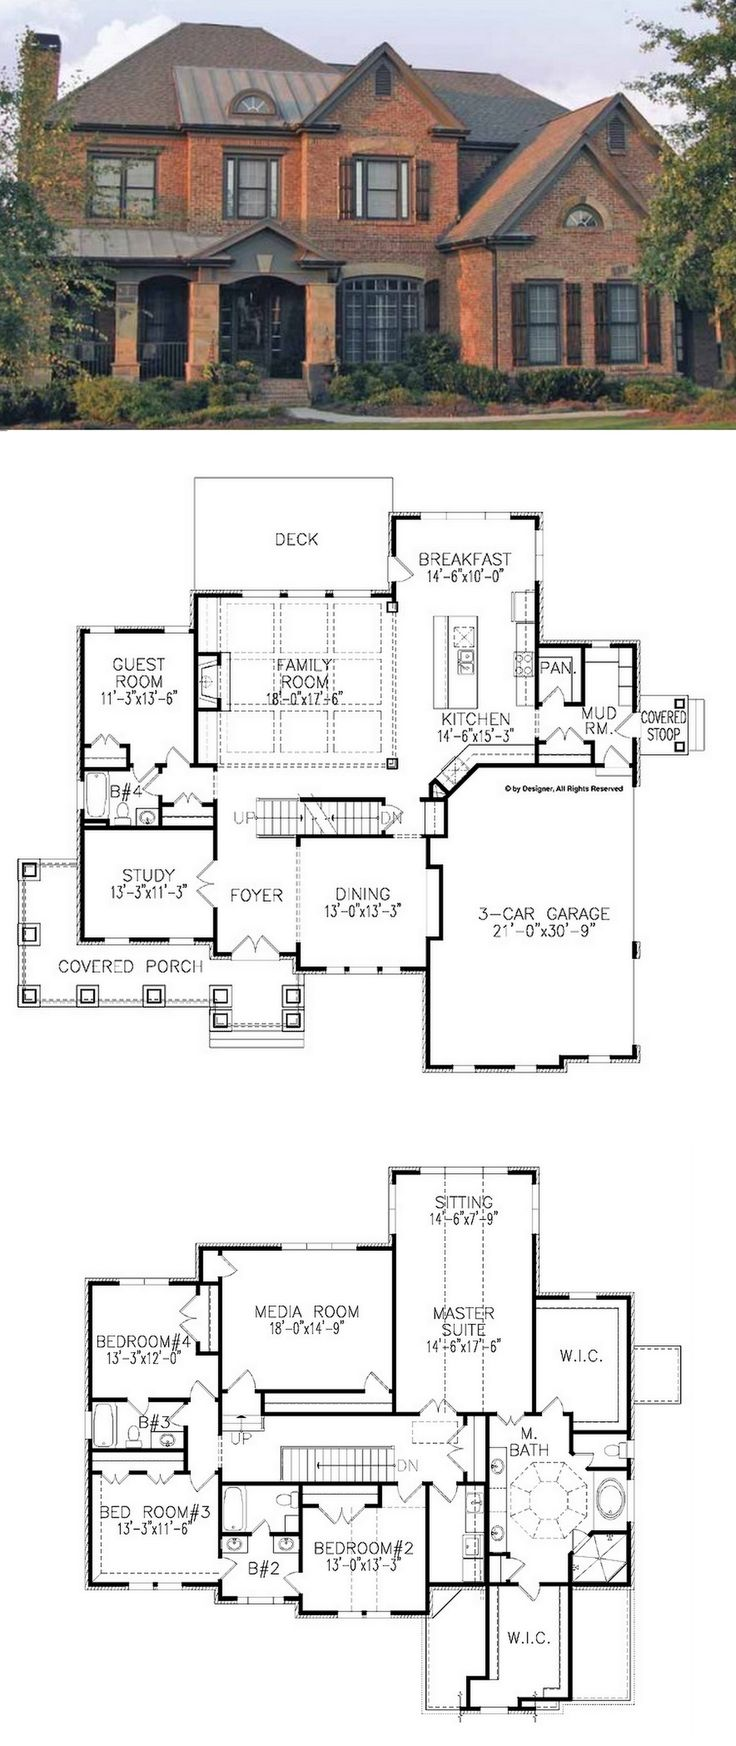 25 Best Ideas About Floor Plans On Pinterest House